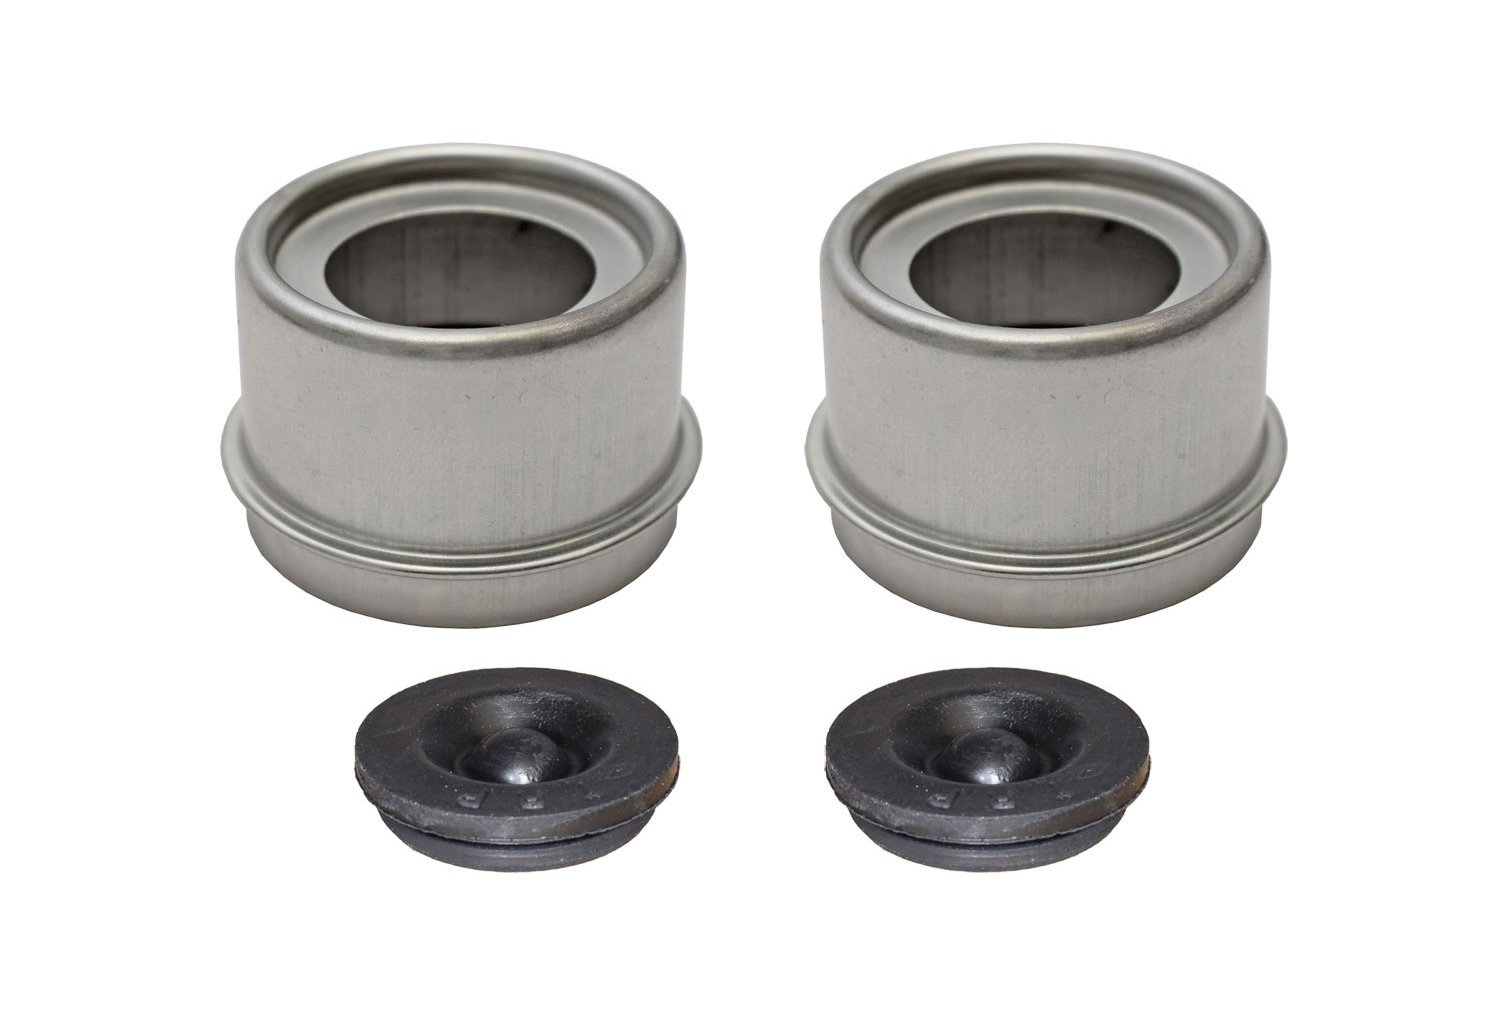 E-Z Lube Grease Caps With Rubber Plugs - Pair (EZ1-PR)